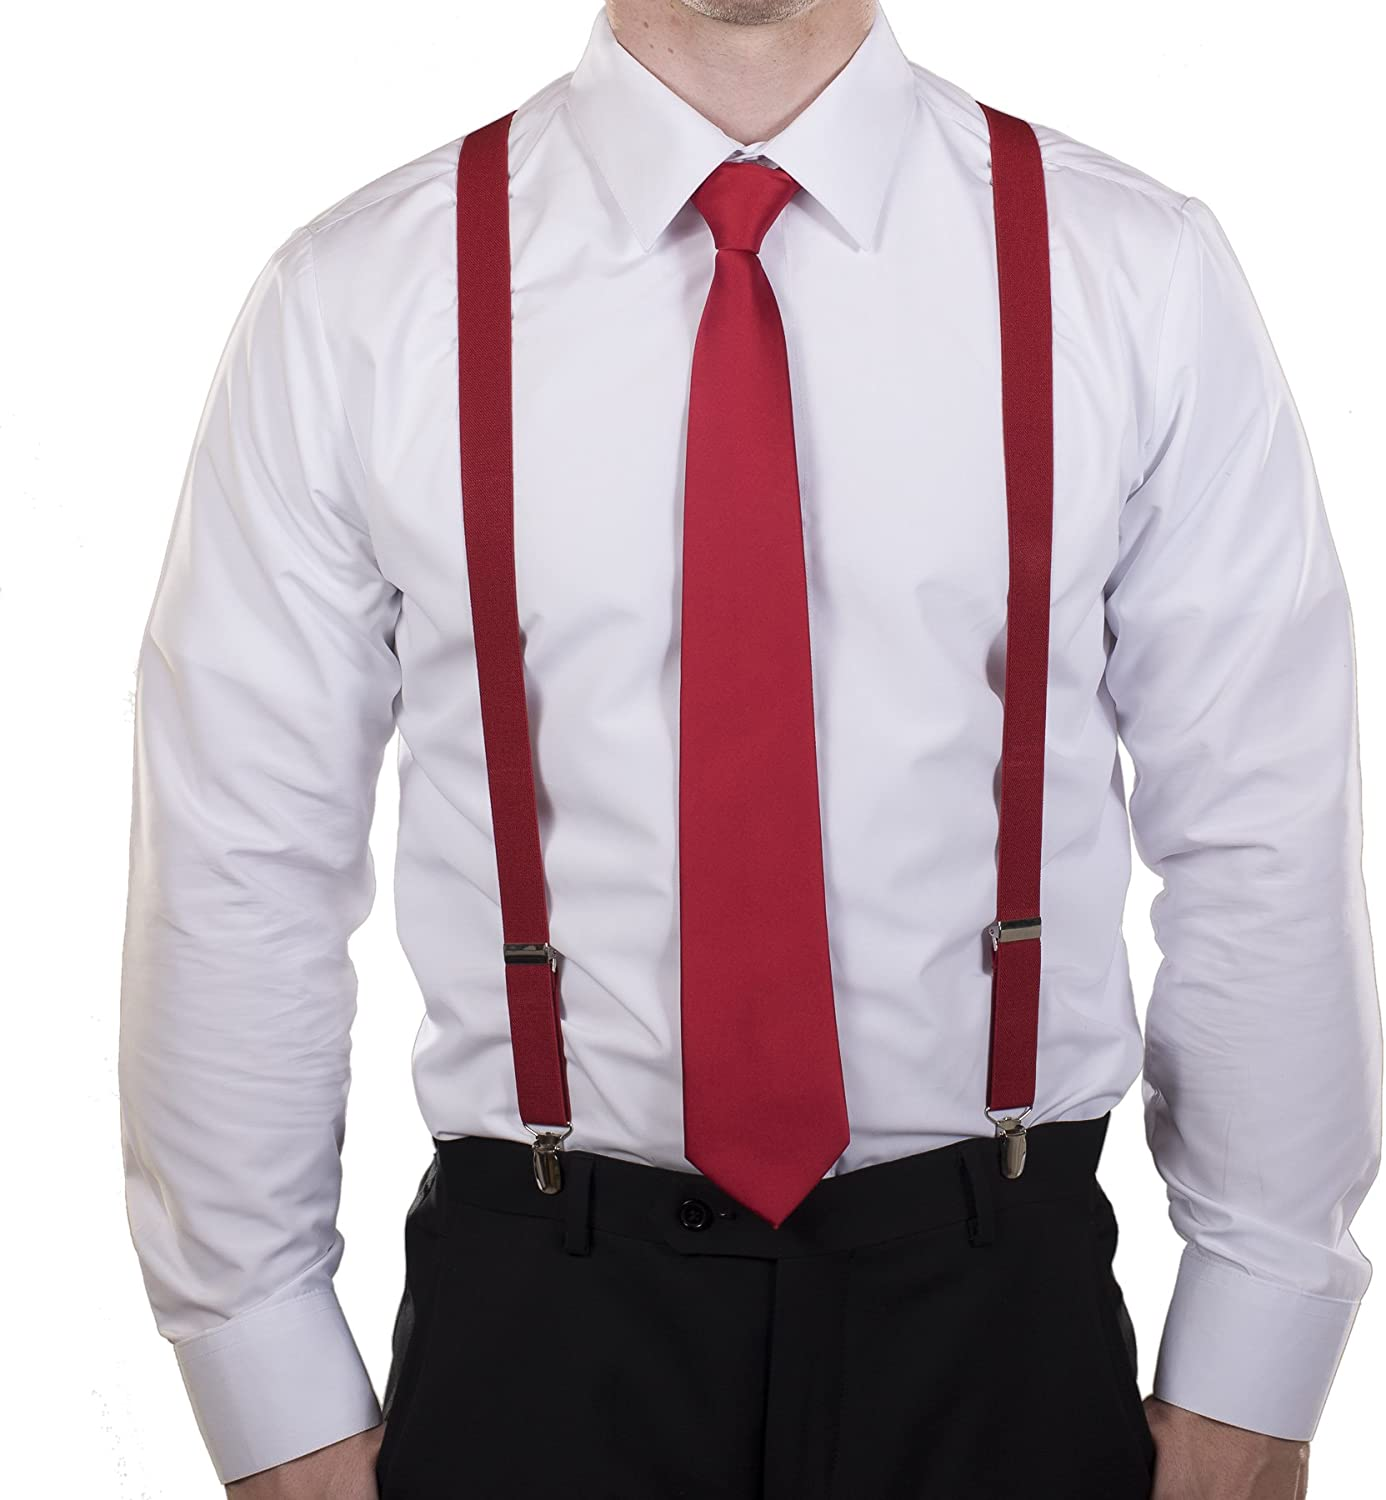 Tuxgear Mens Neck Tie and Suspender Set (Classic Collection)